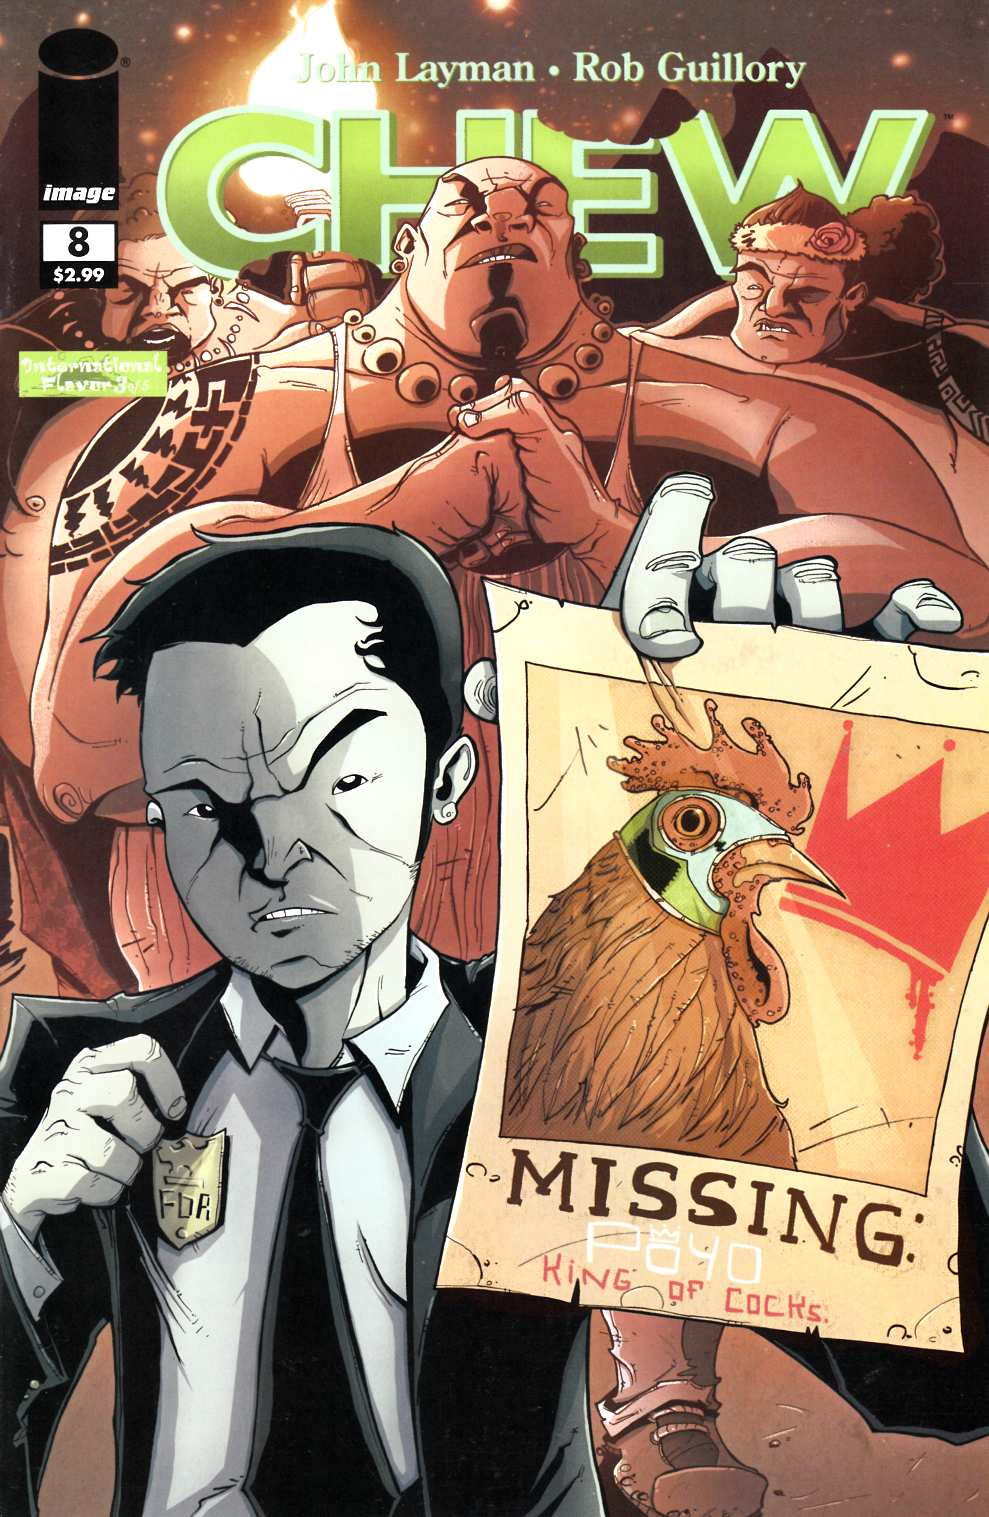 Chew #8 [Image Comic]